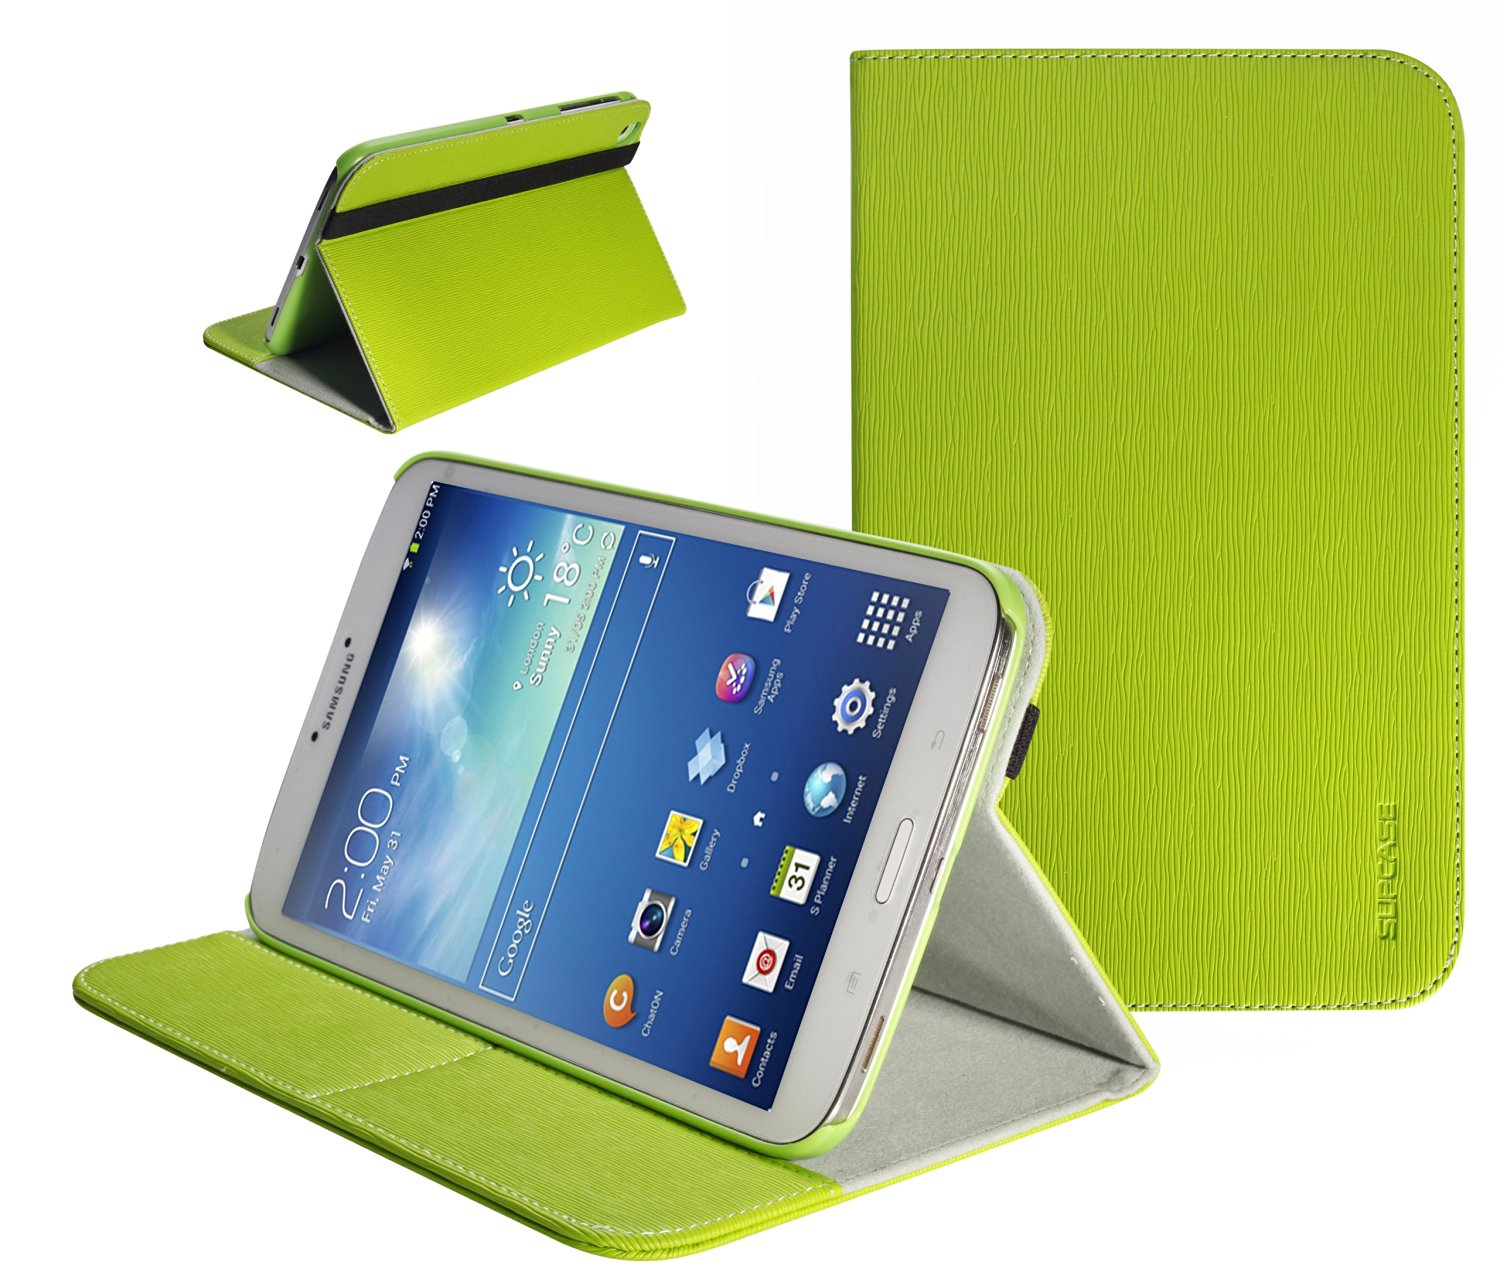 SUPCASE Samsung Galaxy Tab 3 8.0 inch Tablet Slim Hard Shell Leather Case (Green) - Support Auto Wake/Sleep (Smart Cover Function), Multi-Angle Viewing, Business Card Holder, Not Fit Samsung Galaxy Note 8.0 inch Tablet/Samsung Galaxy Tab 3 7.0 inch and 10.1 inch Tablet